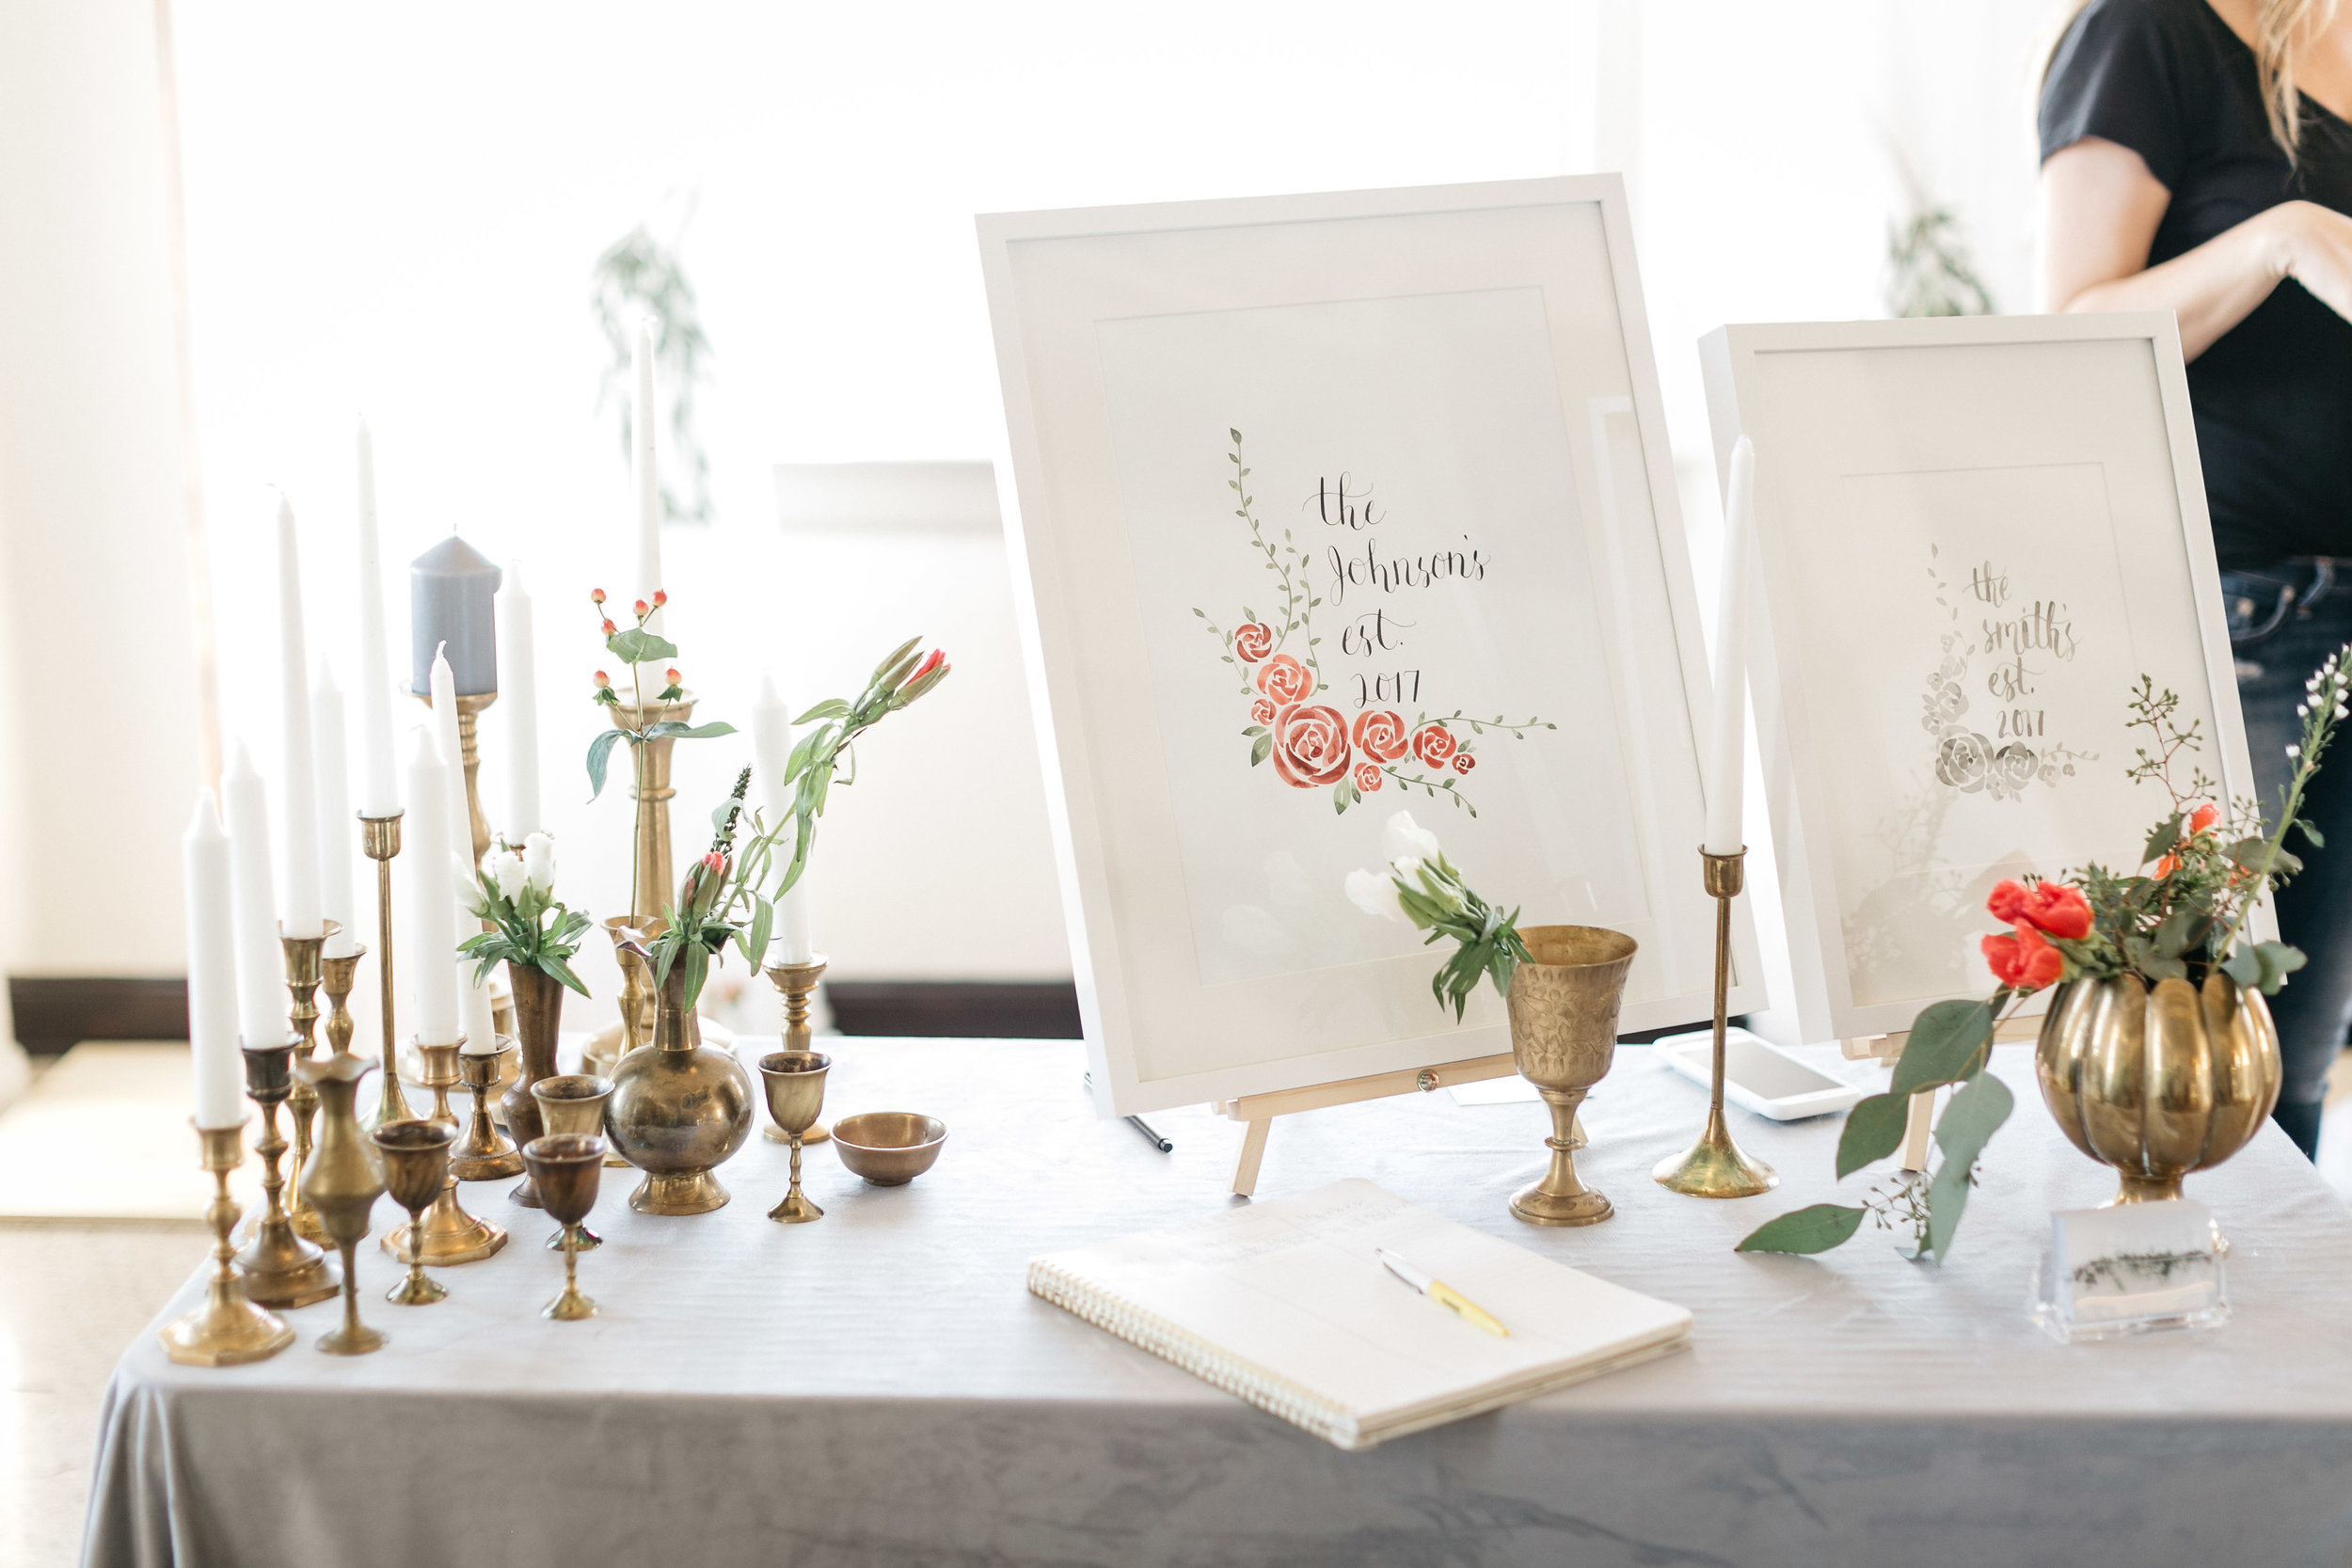 event:  the swoon event   photo:  beckley & co   design:  tiana mae designs